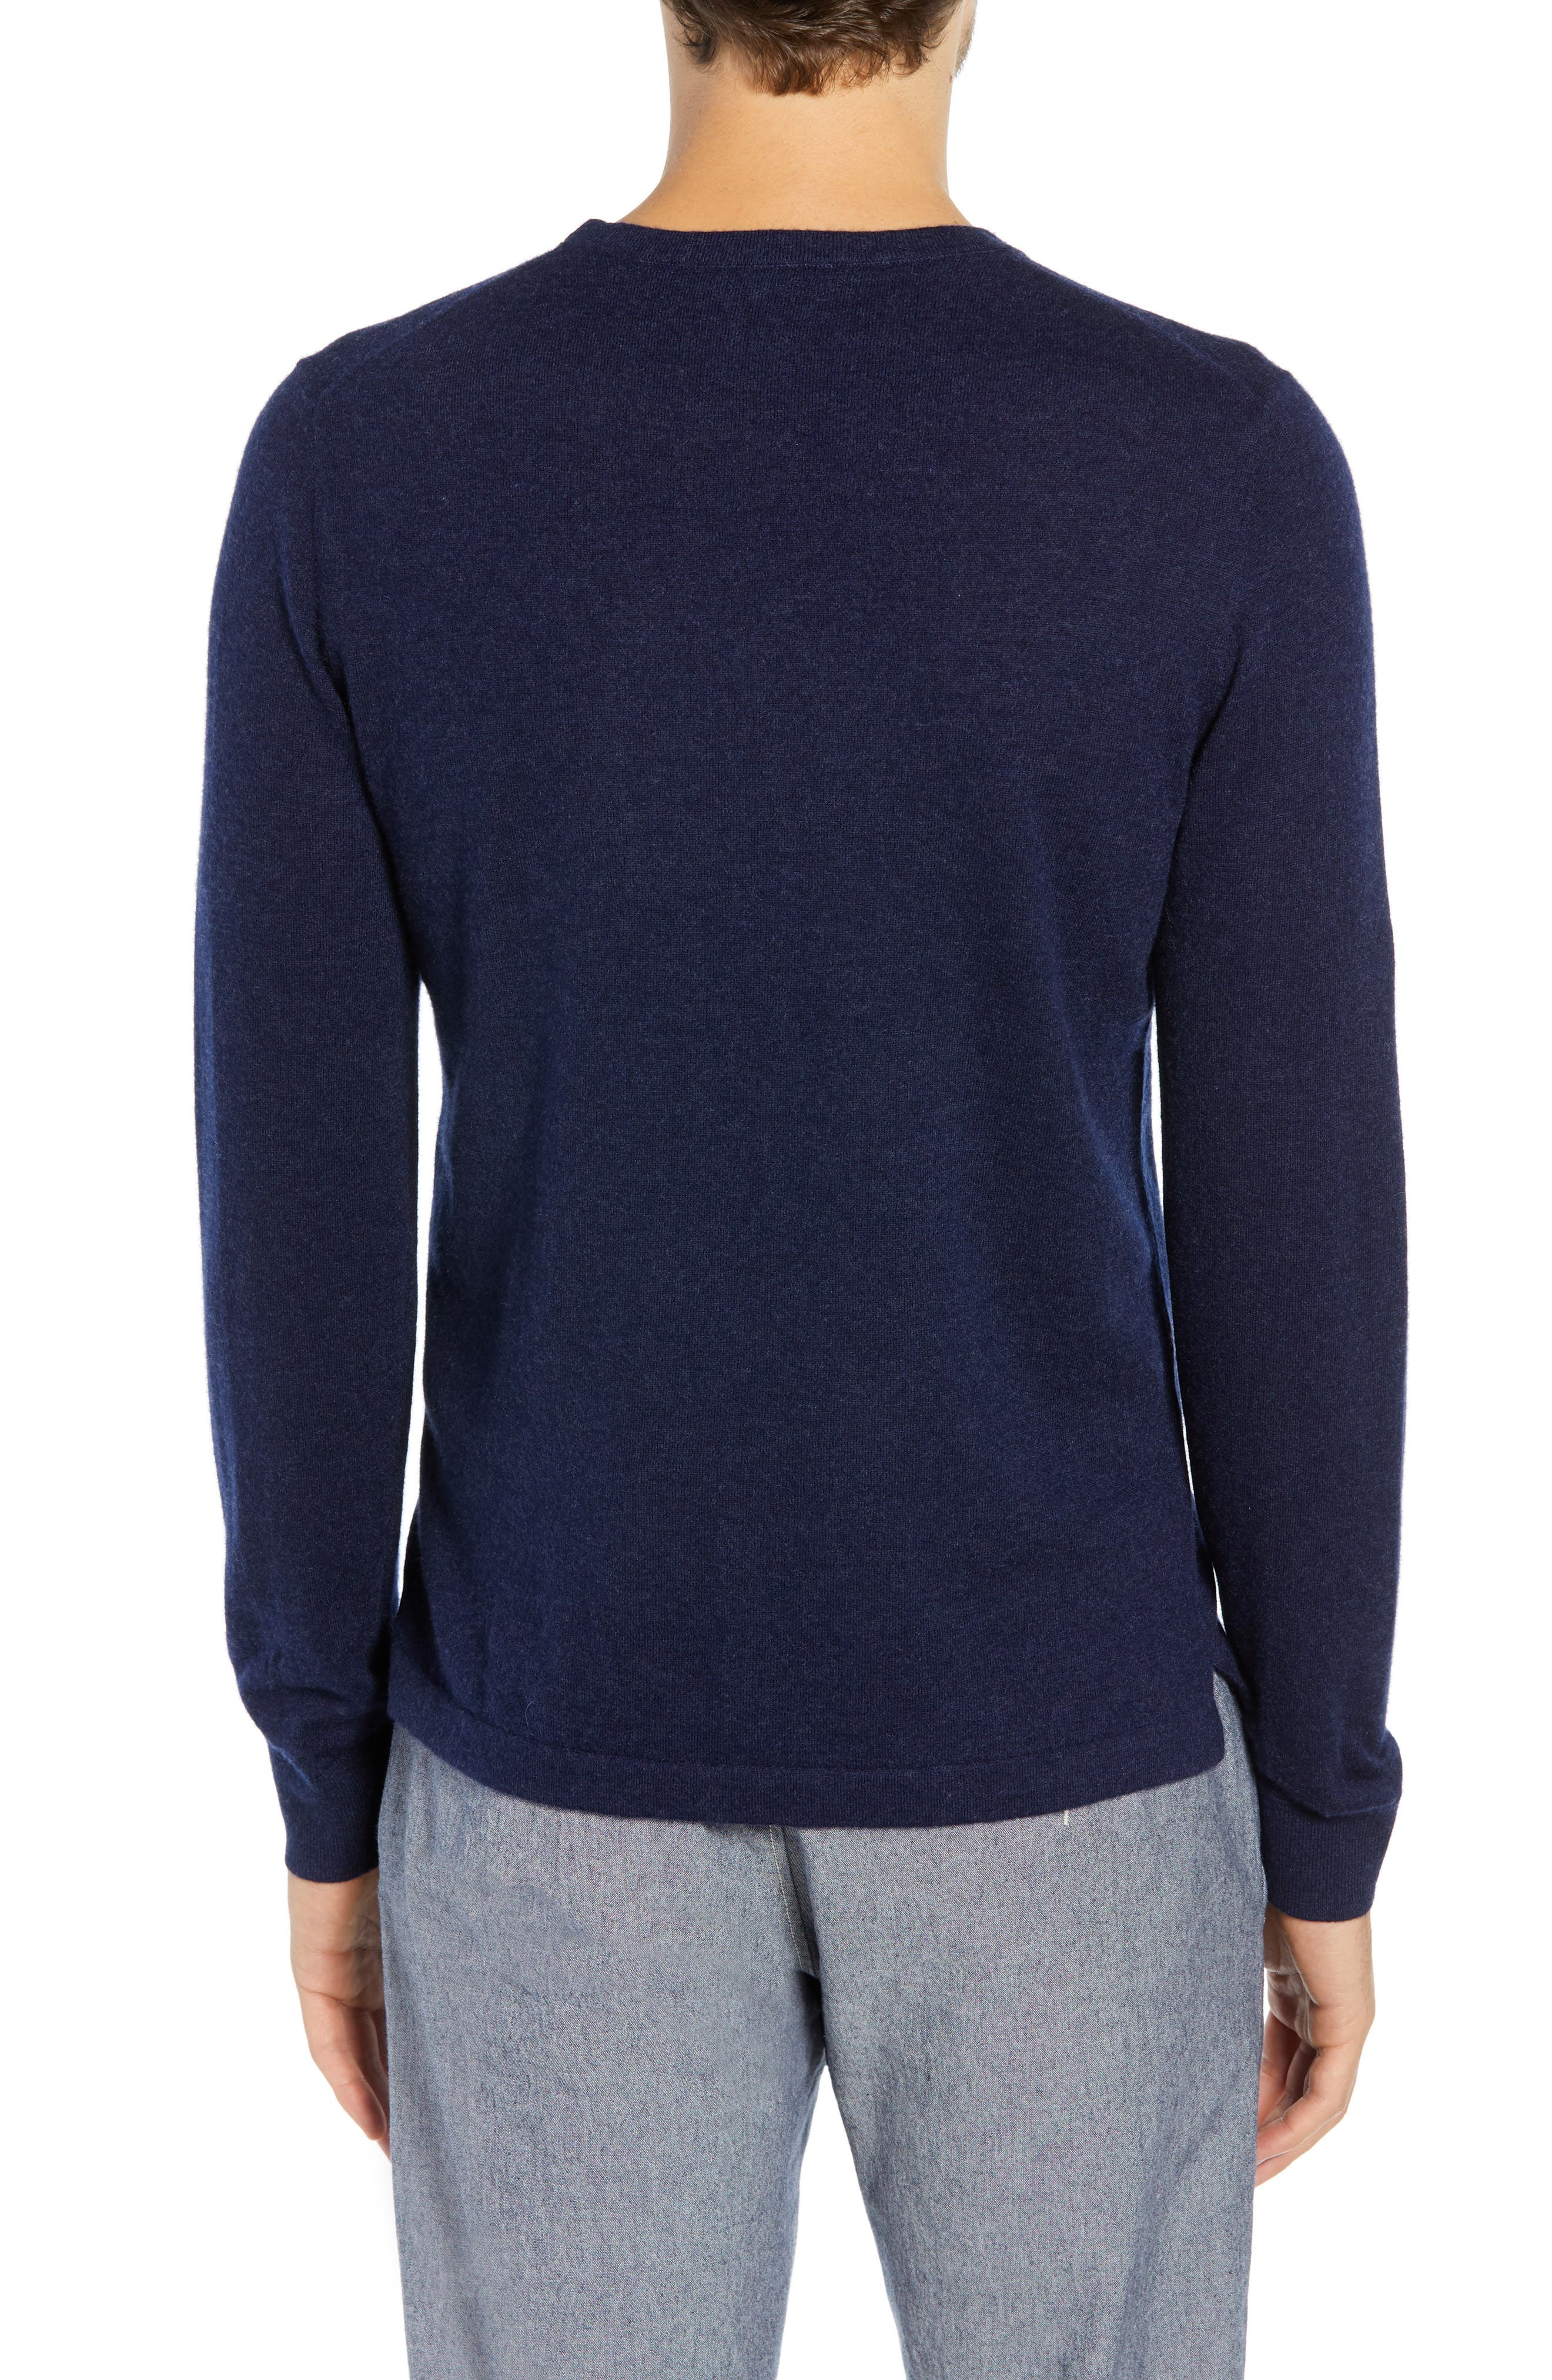 Cashmere Sweater,                             Alternate thumbnail 2, color,                             475